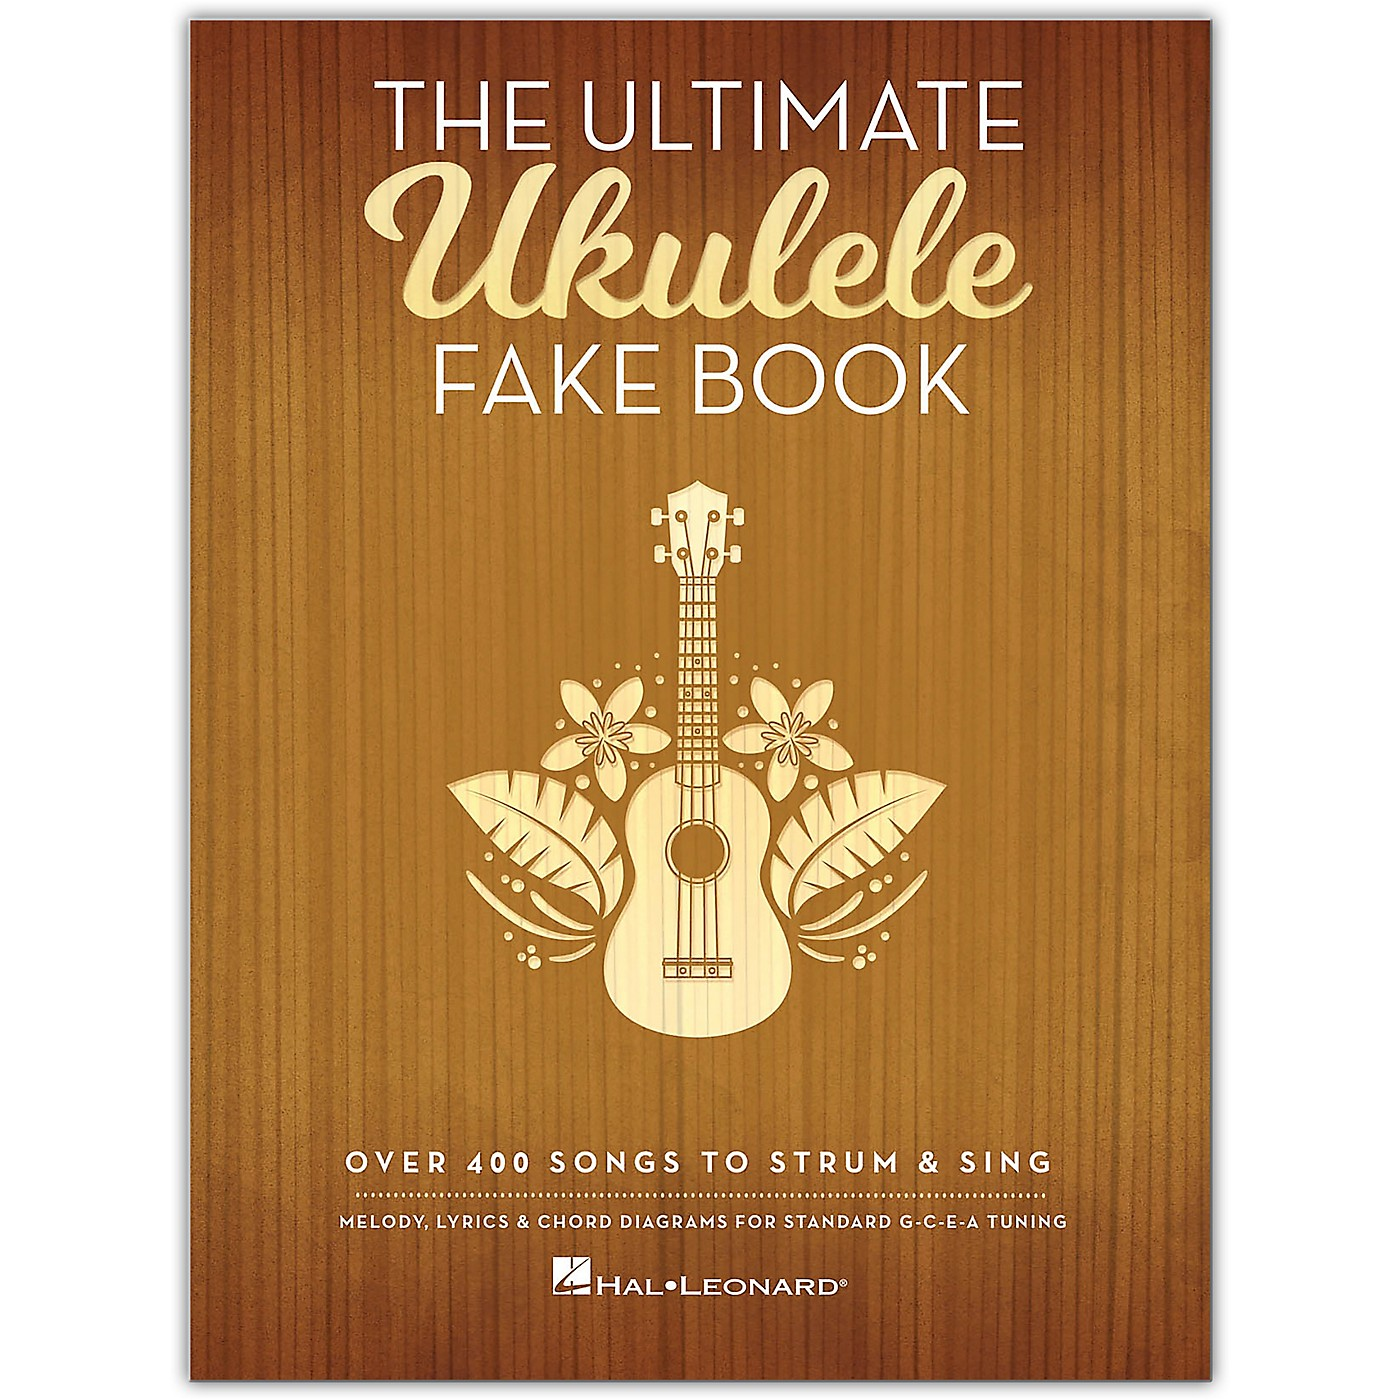 Hal Leonard The Ultimate Ukulele Fake Book (Over 400 Songs to Strum & Sing) thumbnail